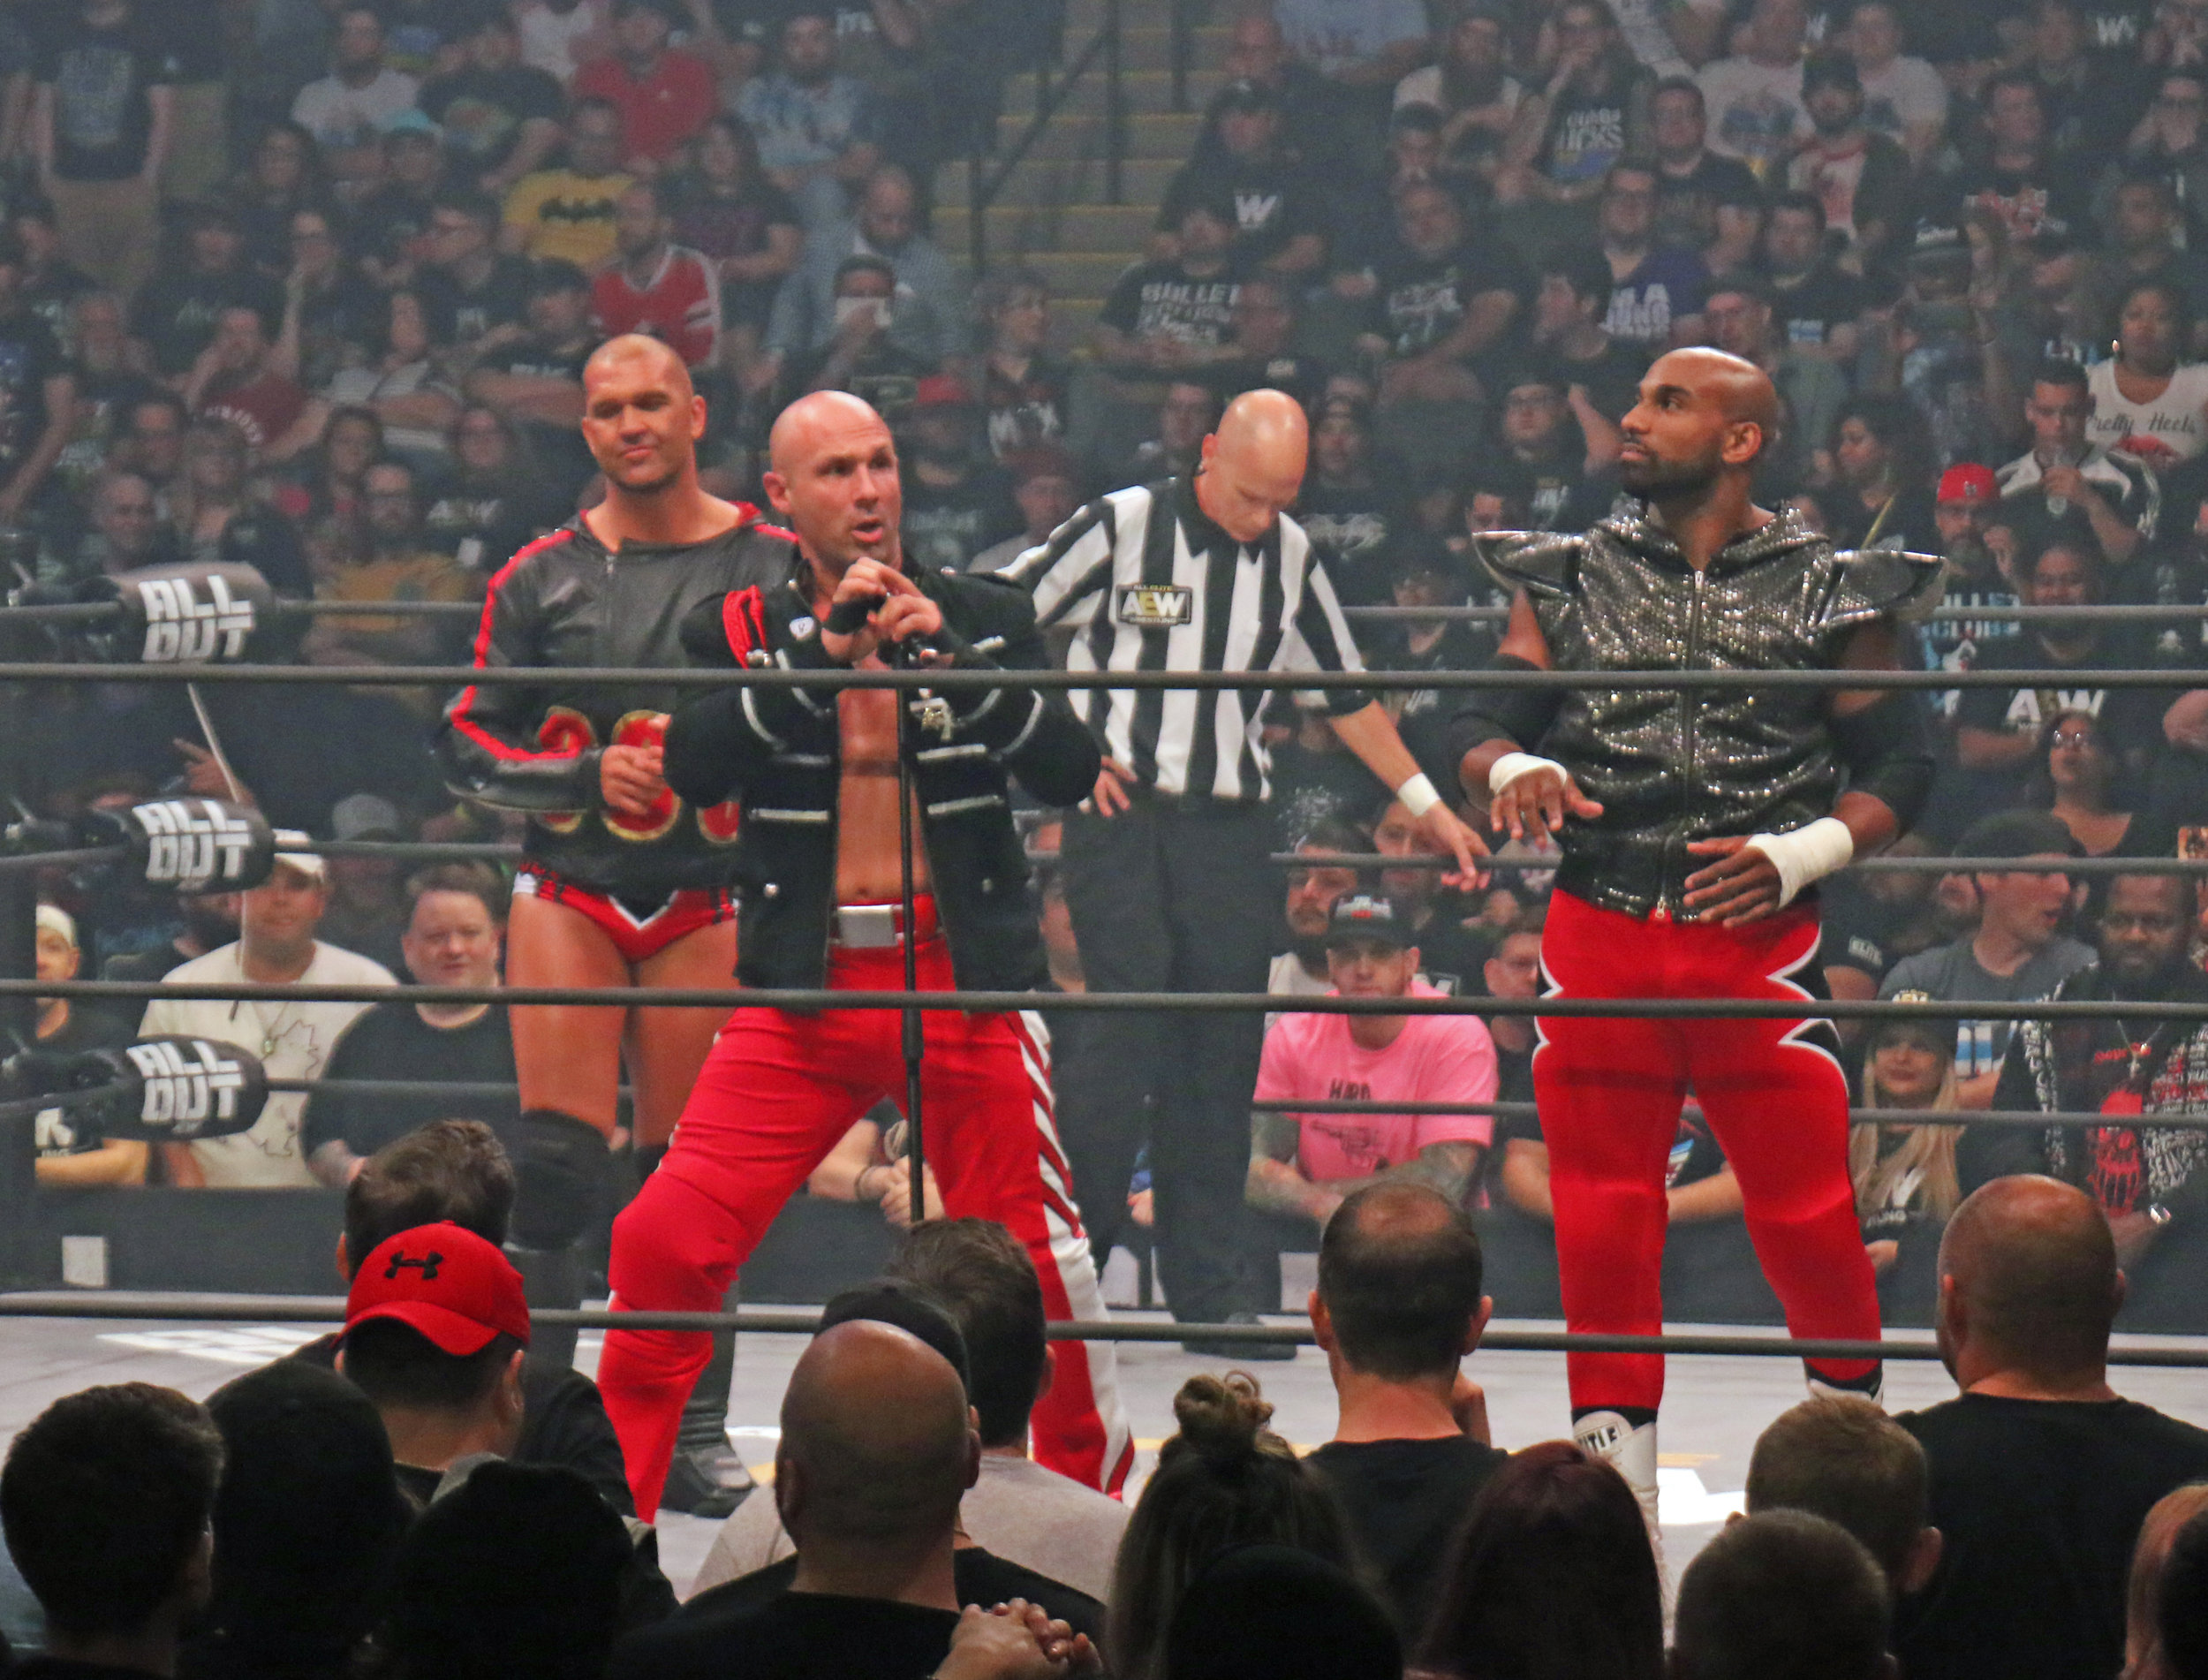 SCU riles up the crowd before the six-man tag team match.